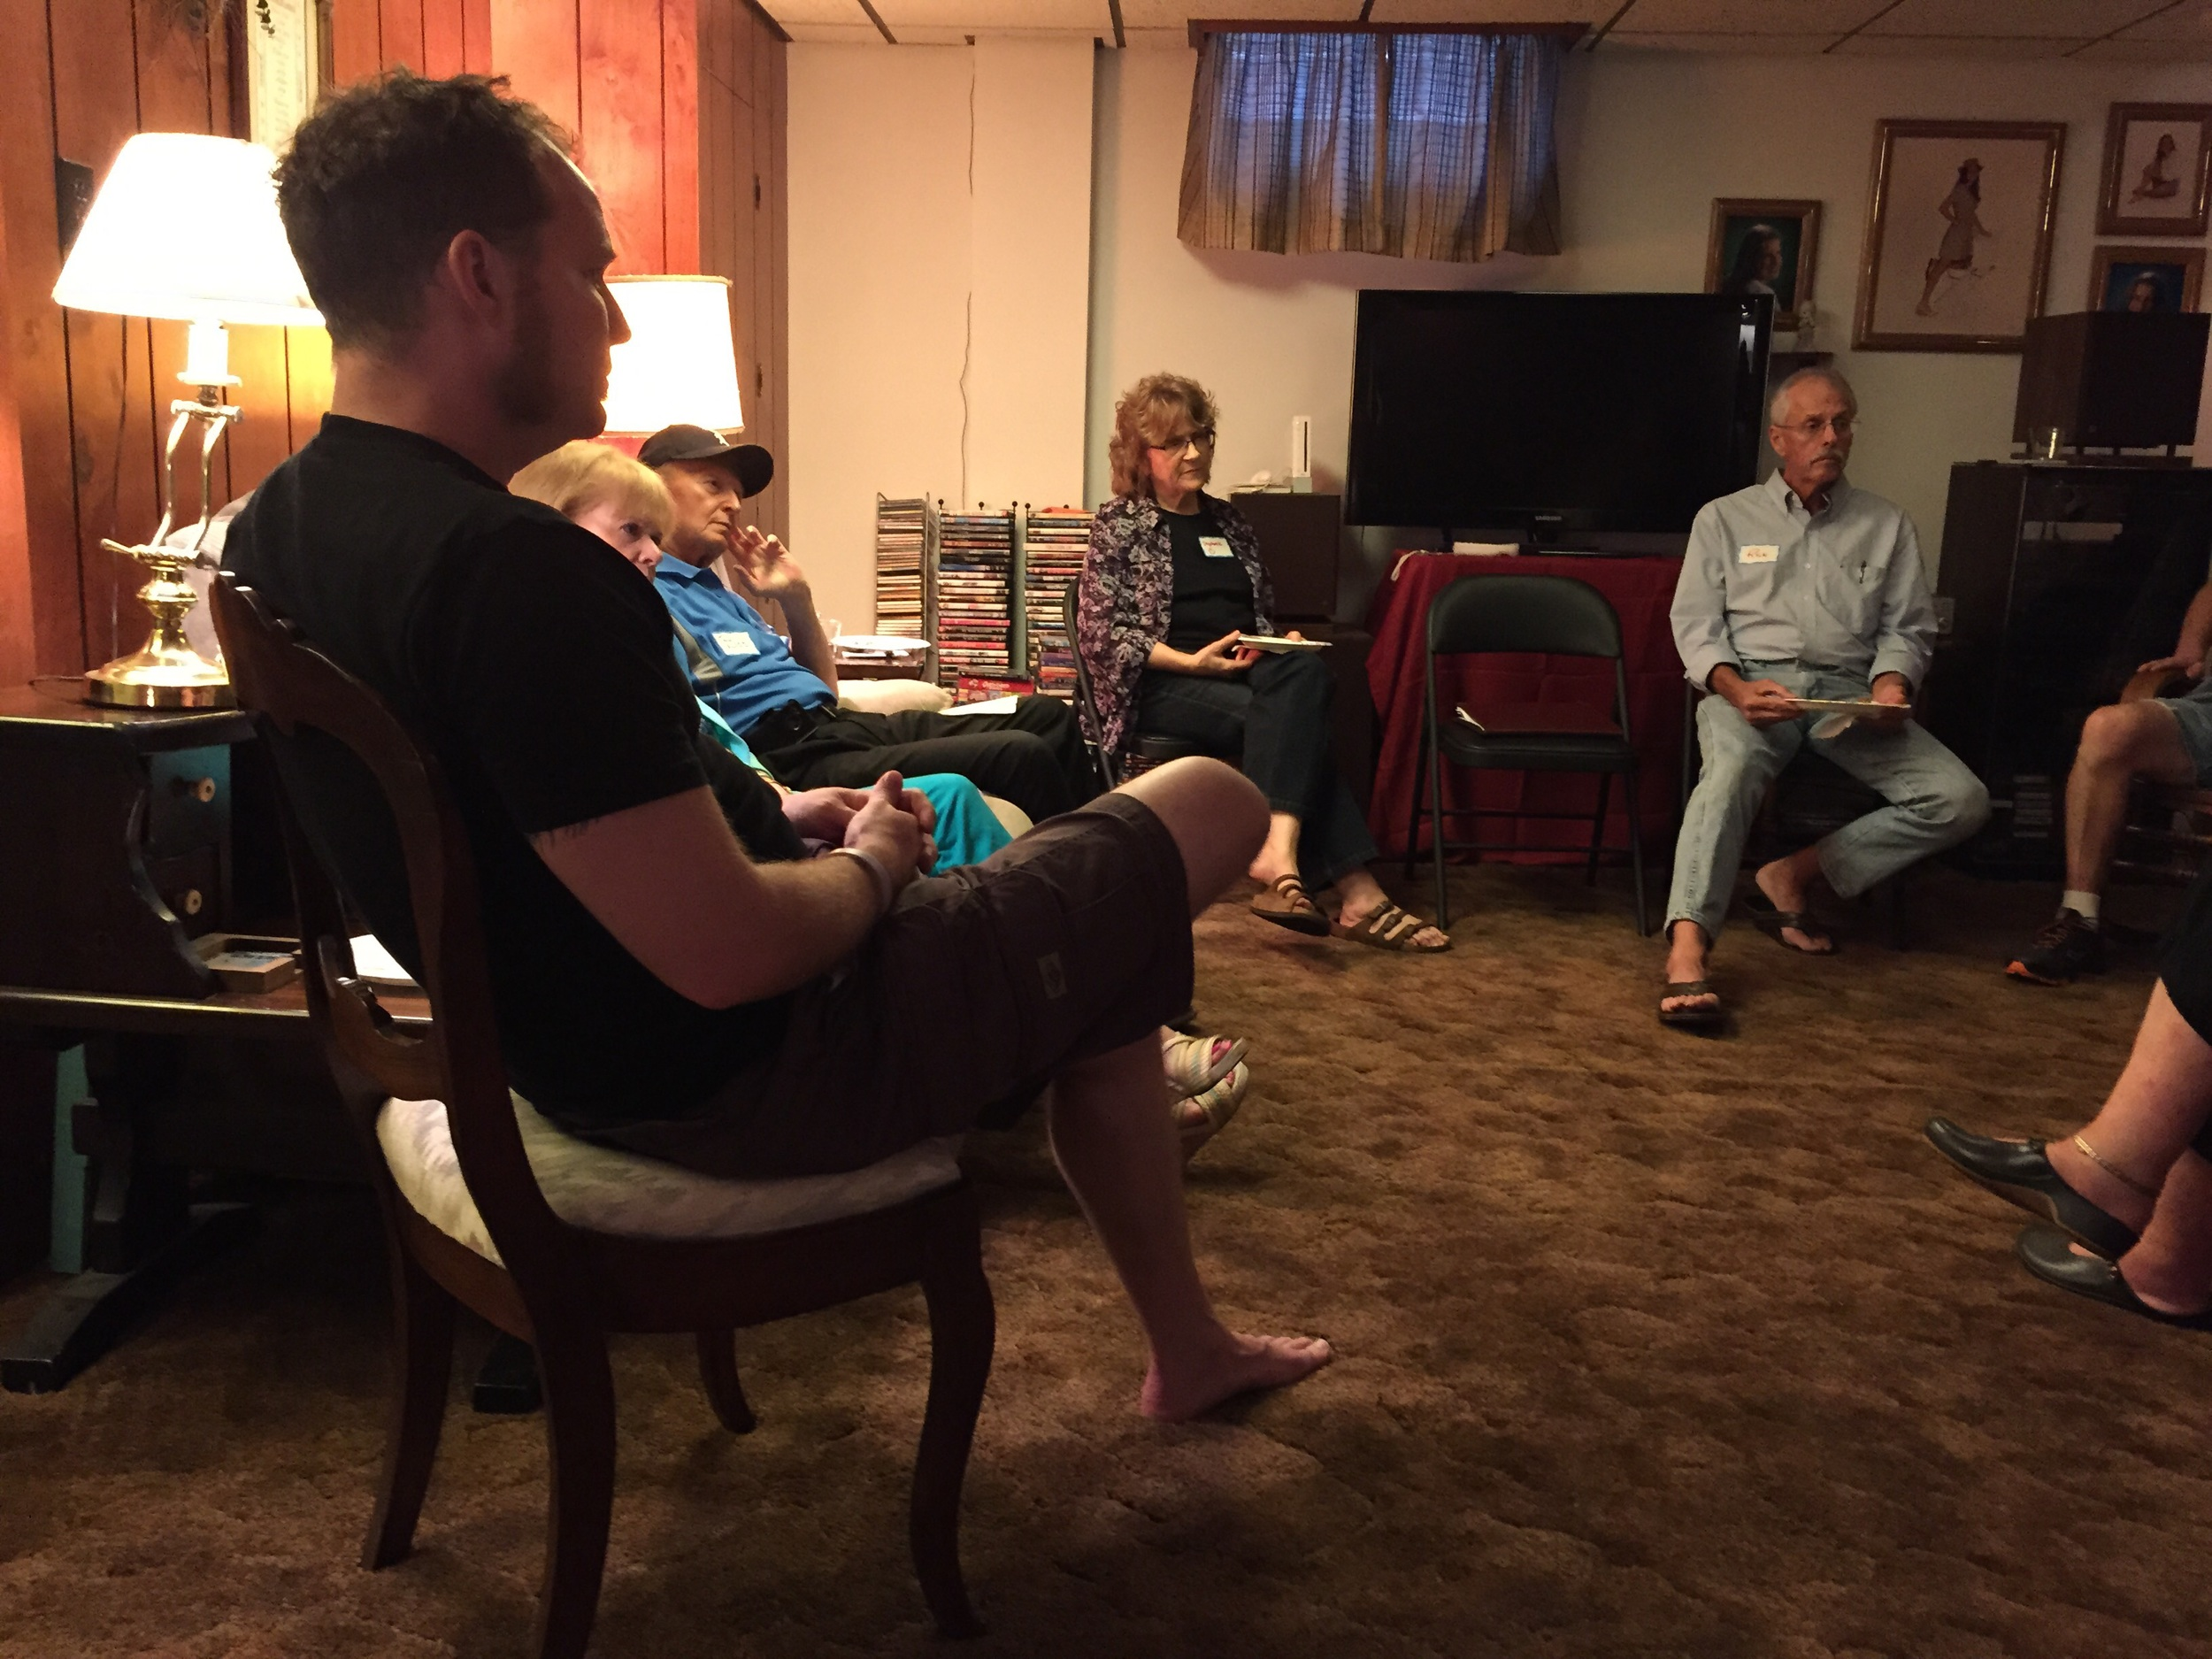 Dearborn Small Group Meeting on 6/17/15